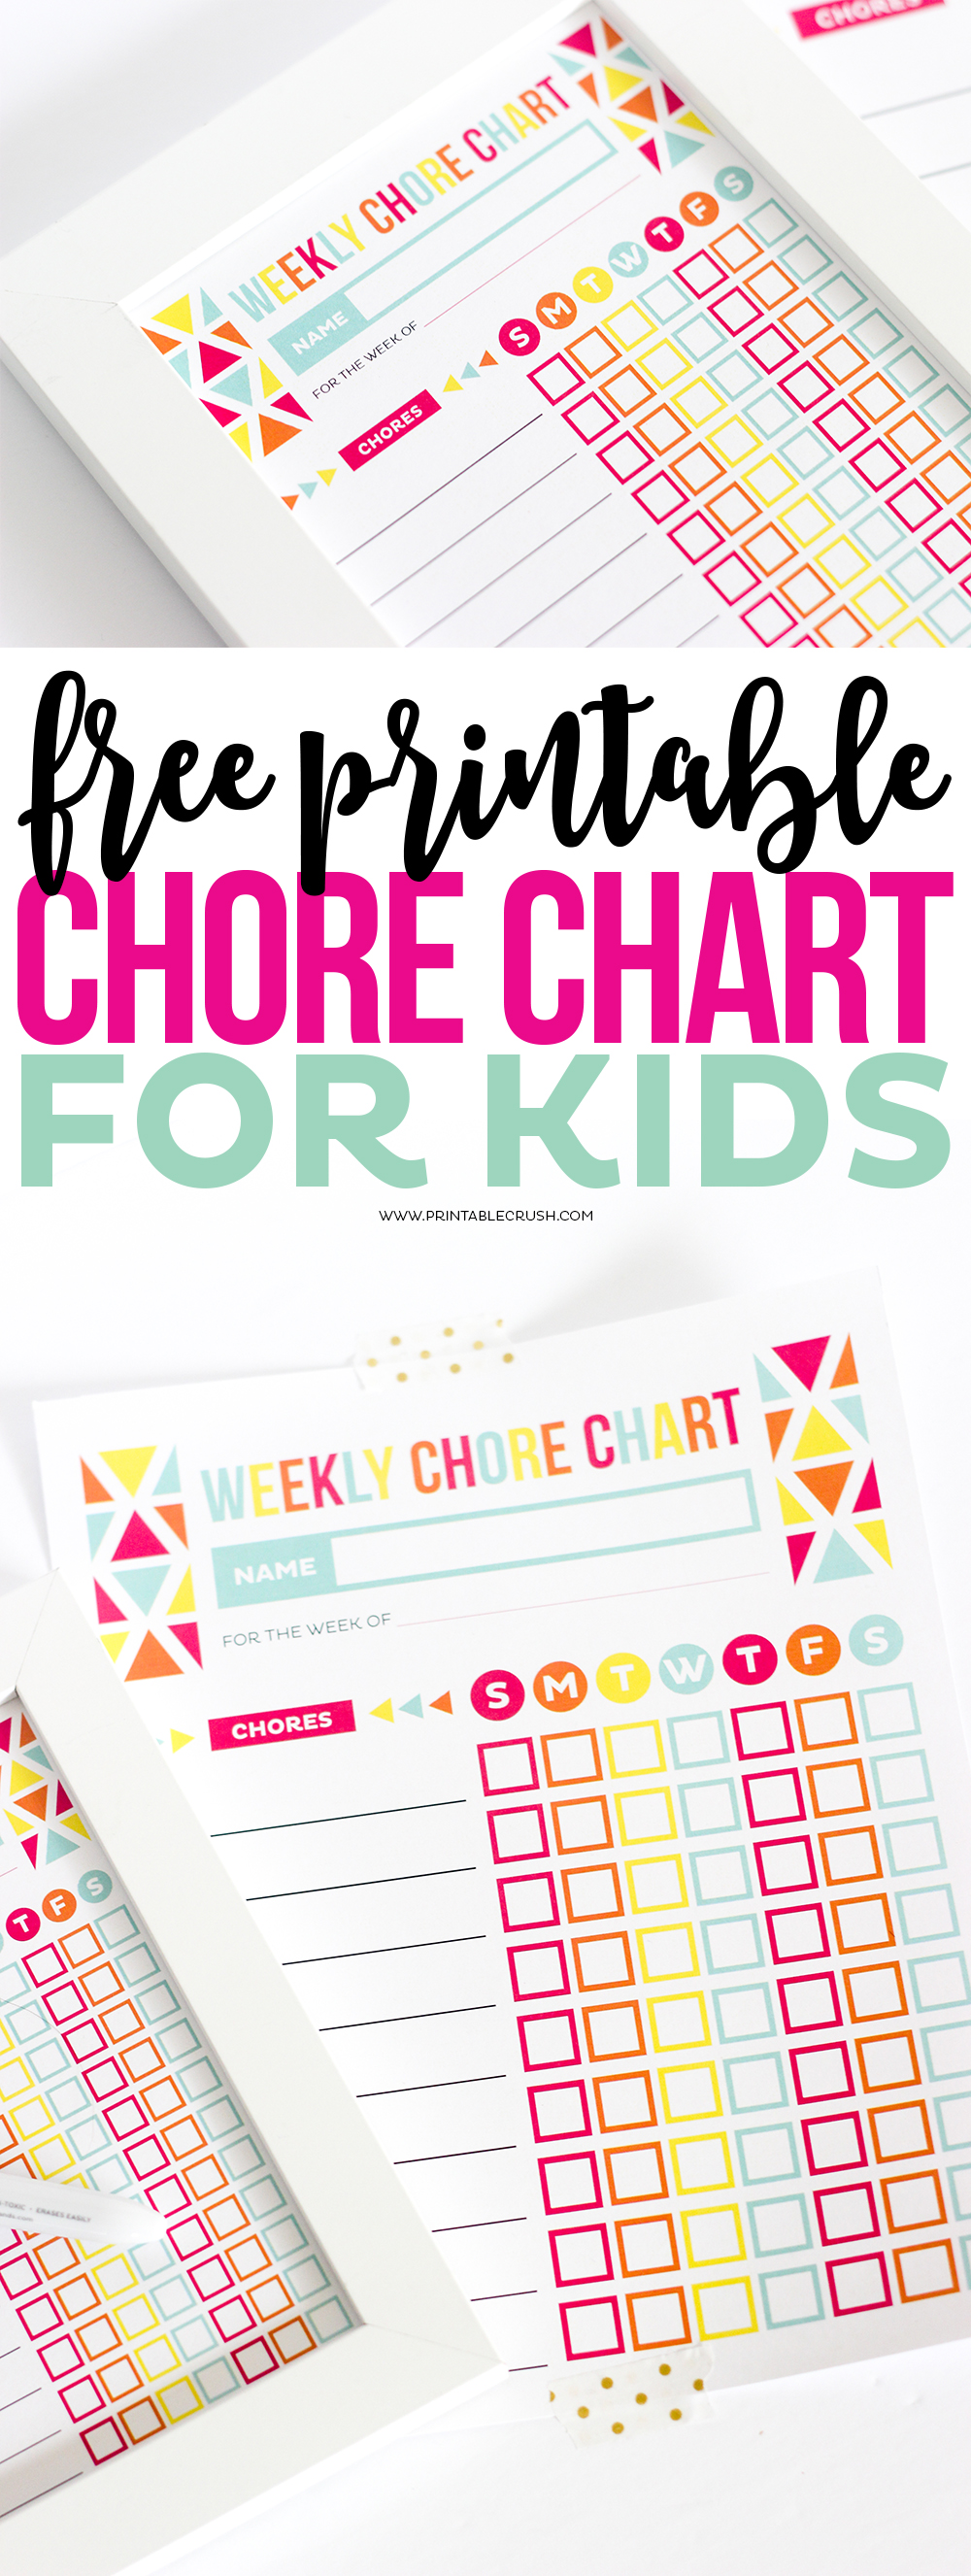 Several chore charts for kids in long pin collage